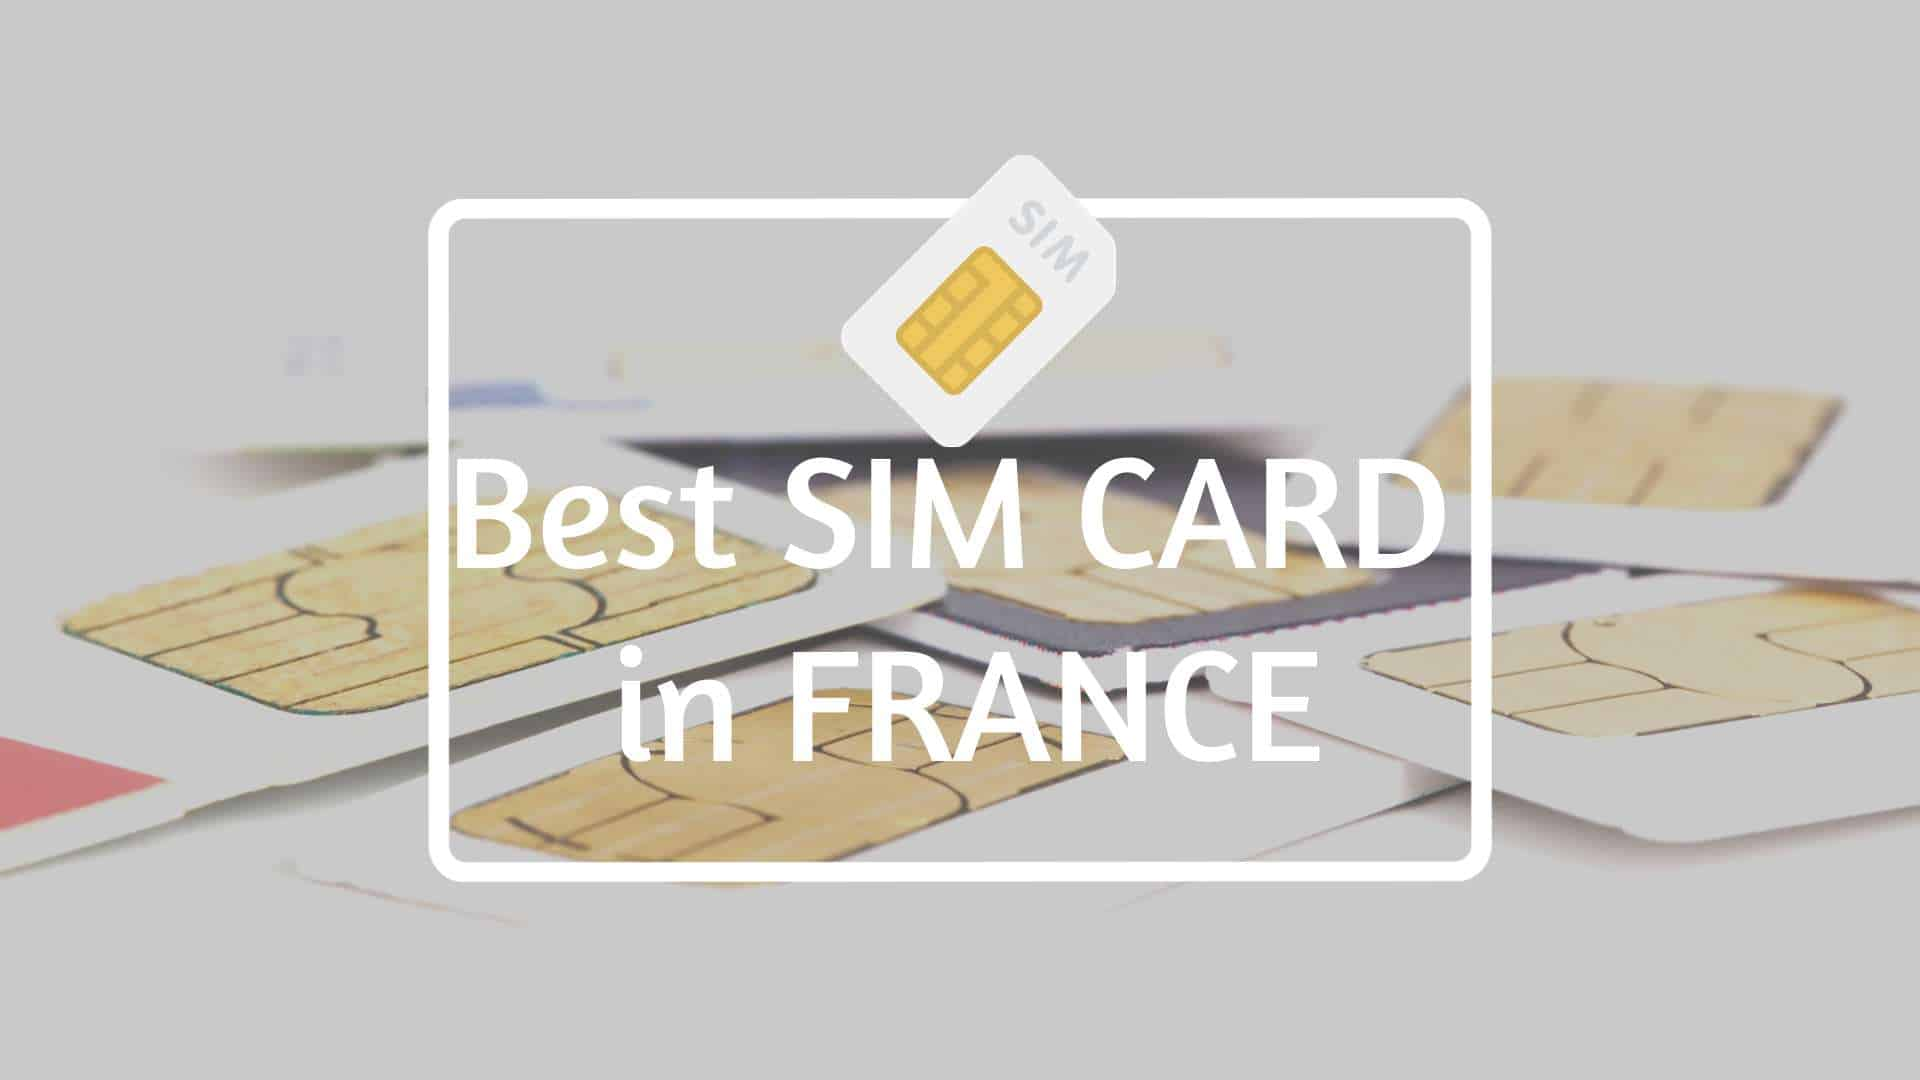 Best SIM CARD in FRANCE